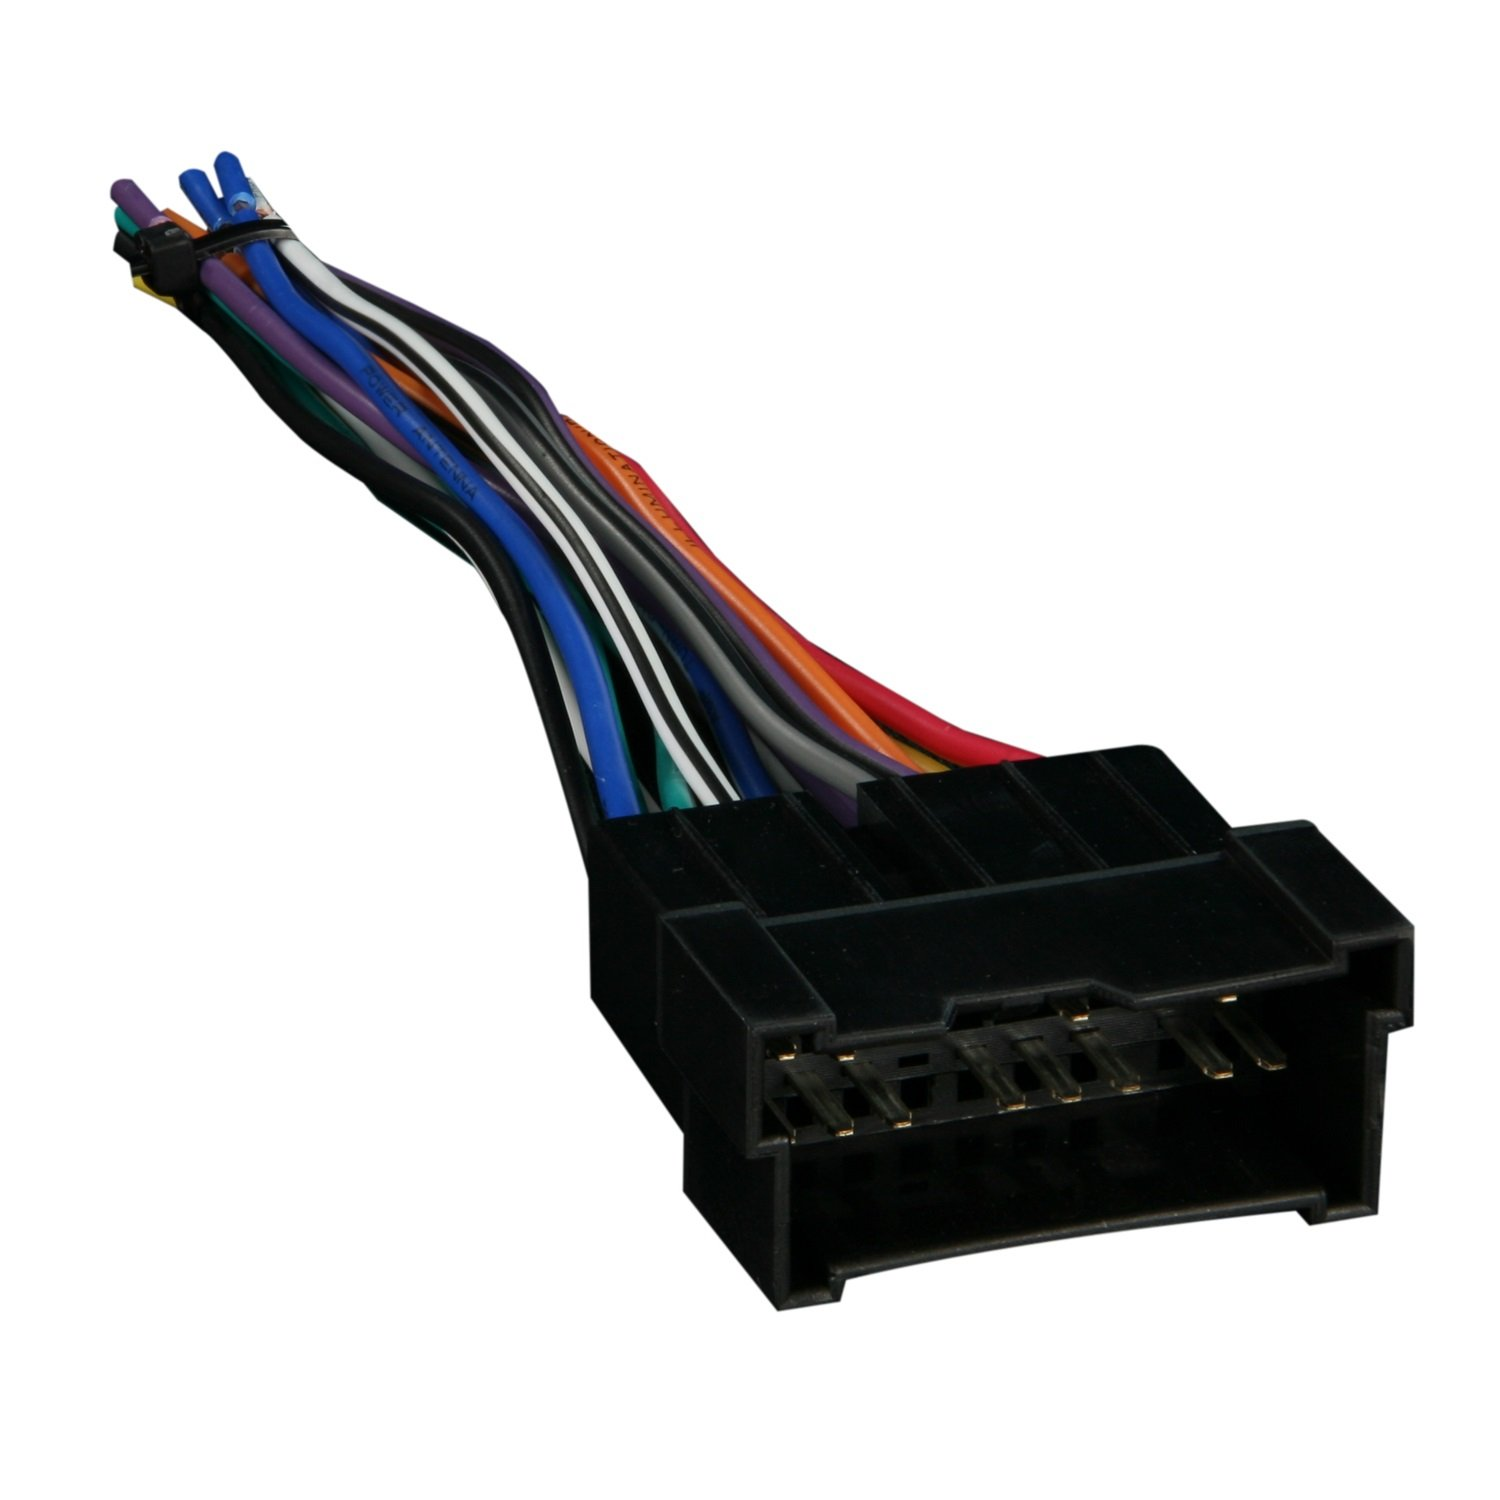 617yeBmOquL._SL1500_ amazon com metra 70 7301 radio wiring harness for hyundai kia 99 Power Acoustik PD- 710 at gsmportal.co